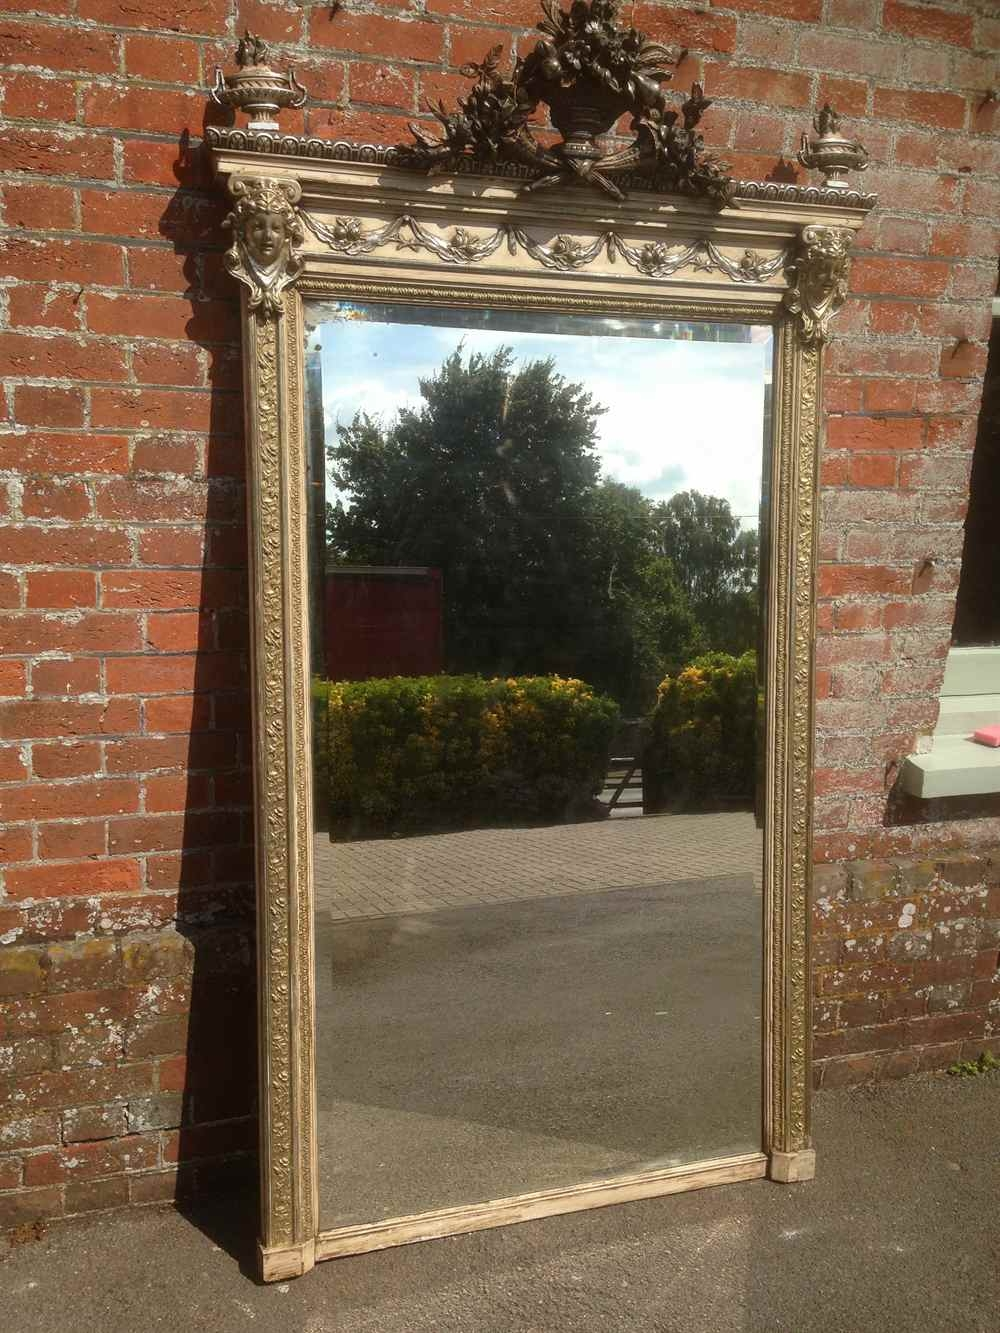 A Stunning Very Decorative Very Large Antique 19th Century French Regarding Antique Large Mirrors (Image 3 of 15)